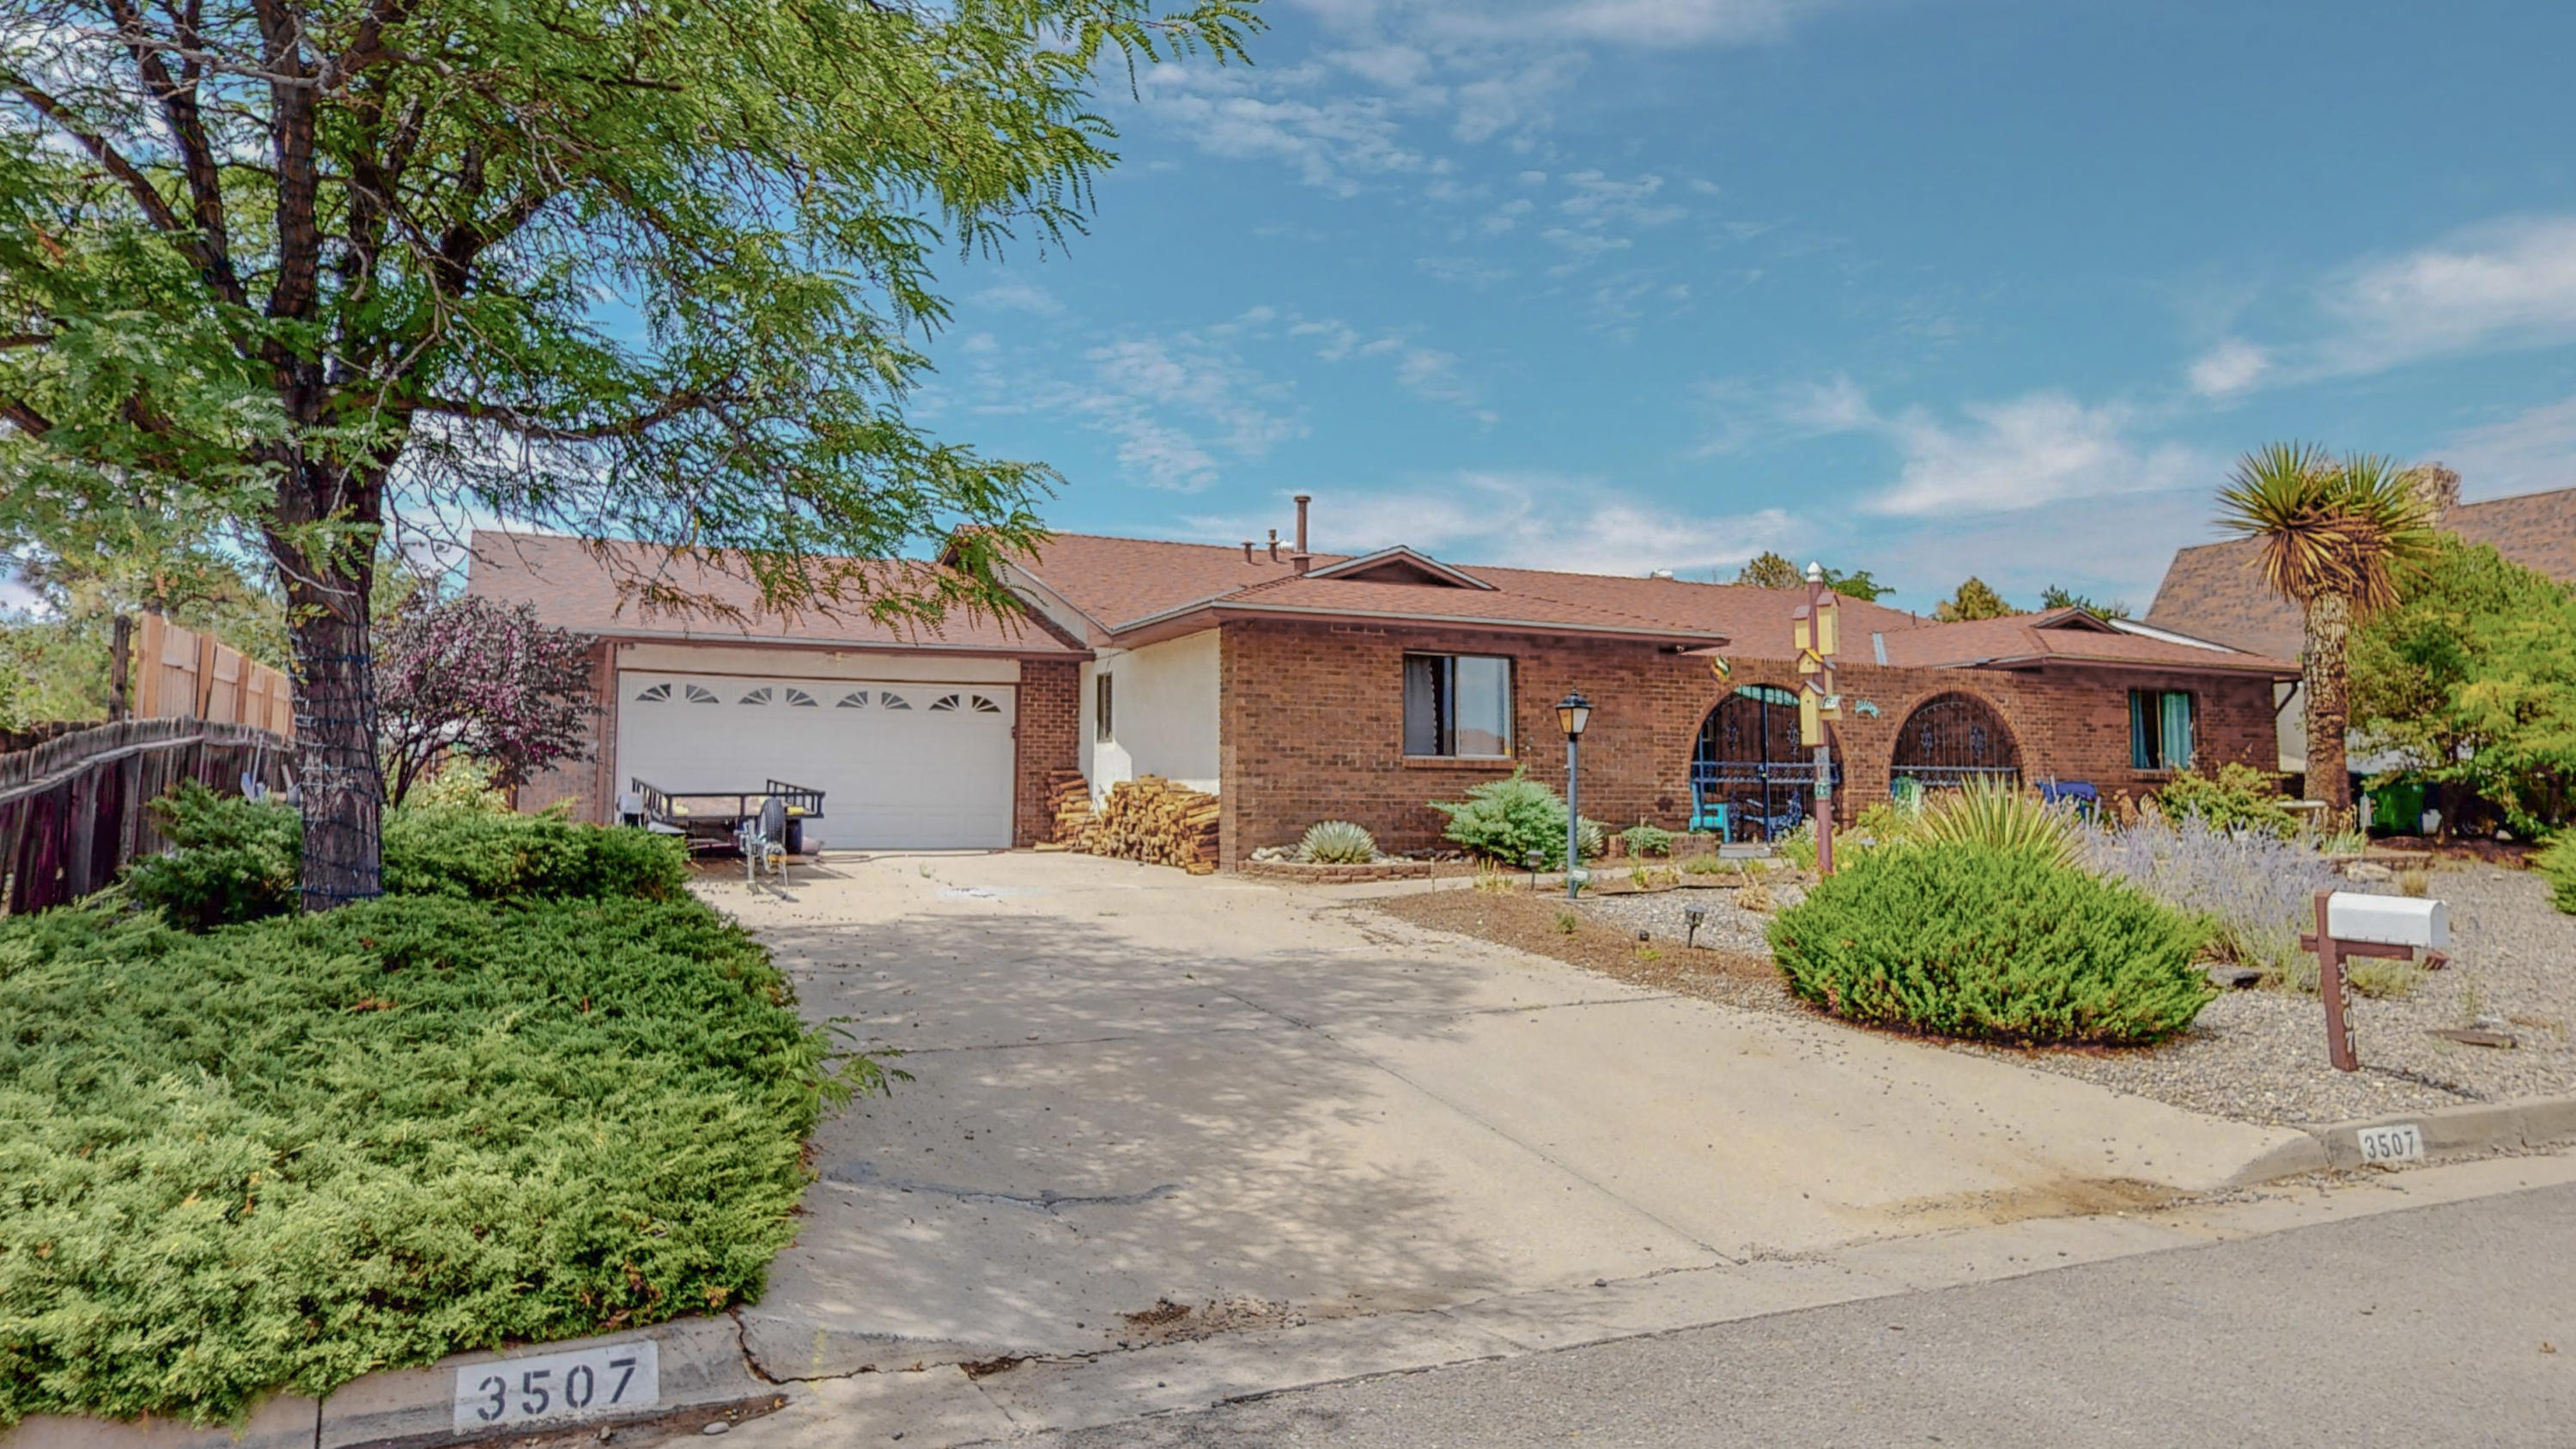 ---REMODELED--- Don't wait! This spectacular 1 Story, 4 Bed, 3 Bath, 2,240 sq/ft home that sits on .47 of an Acre won't last long! This home showcases true pride in workmanship! From the second you walk in you can feel the open flow of the house. You will appreciate the extra space that is in the back of the 2 car garage. When you get to the backyard, don't let the small fence fool you! There still is plenty of space to make the backyard yours! Schedule your showing today!!!